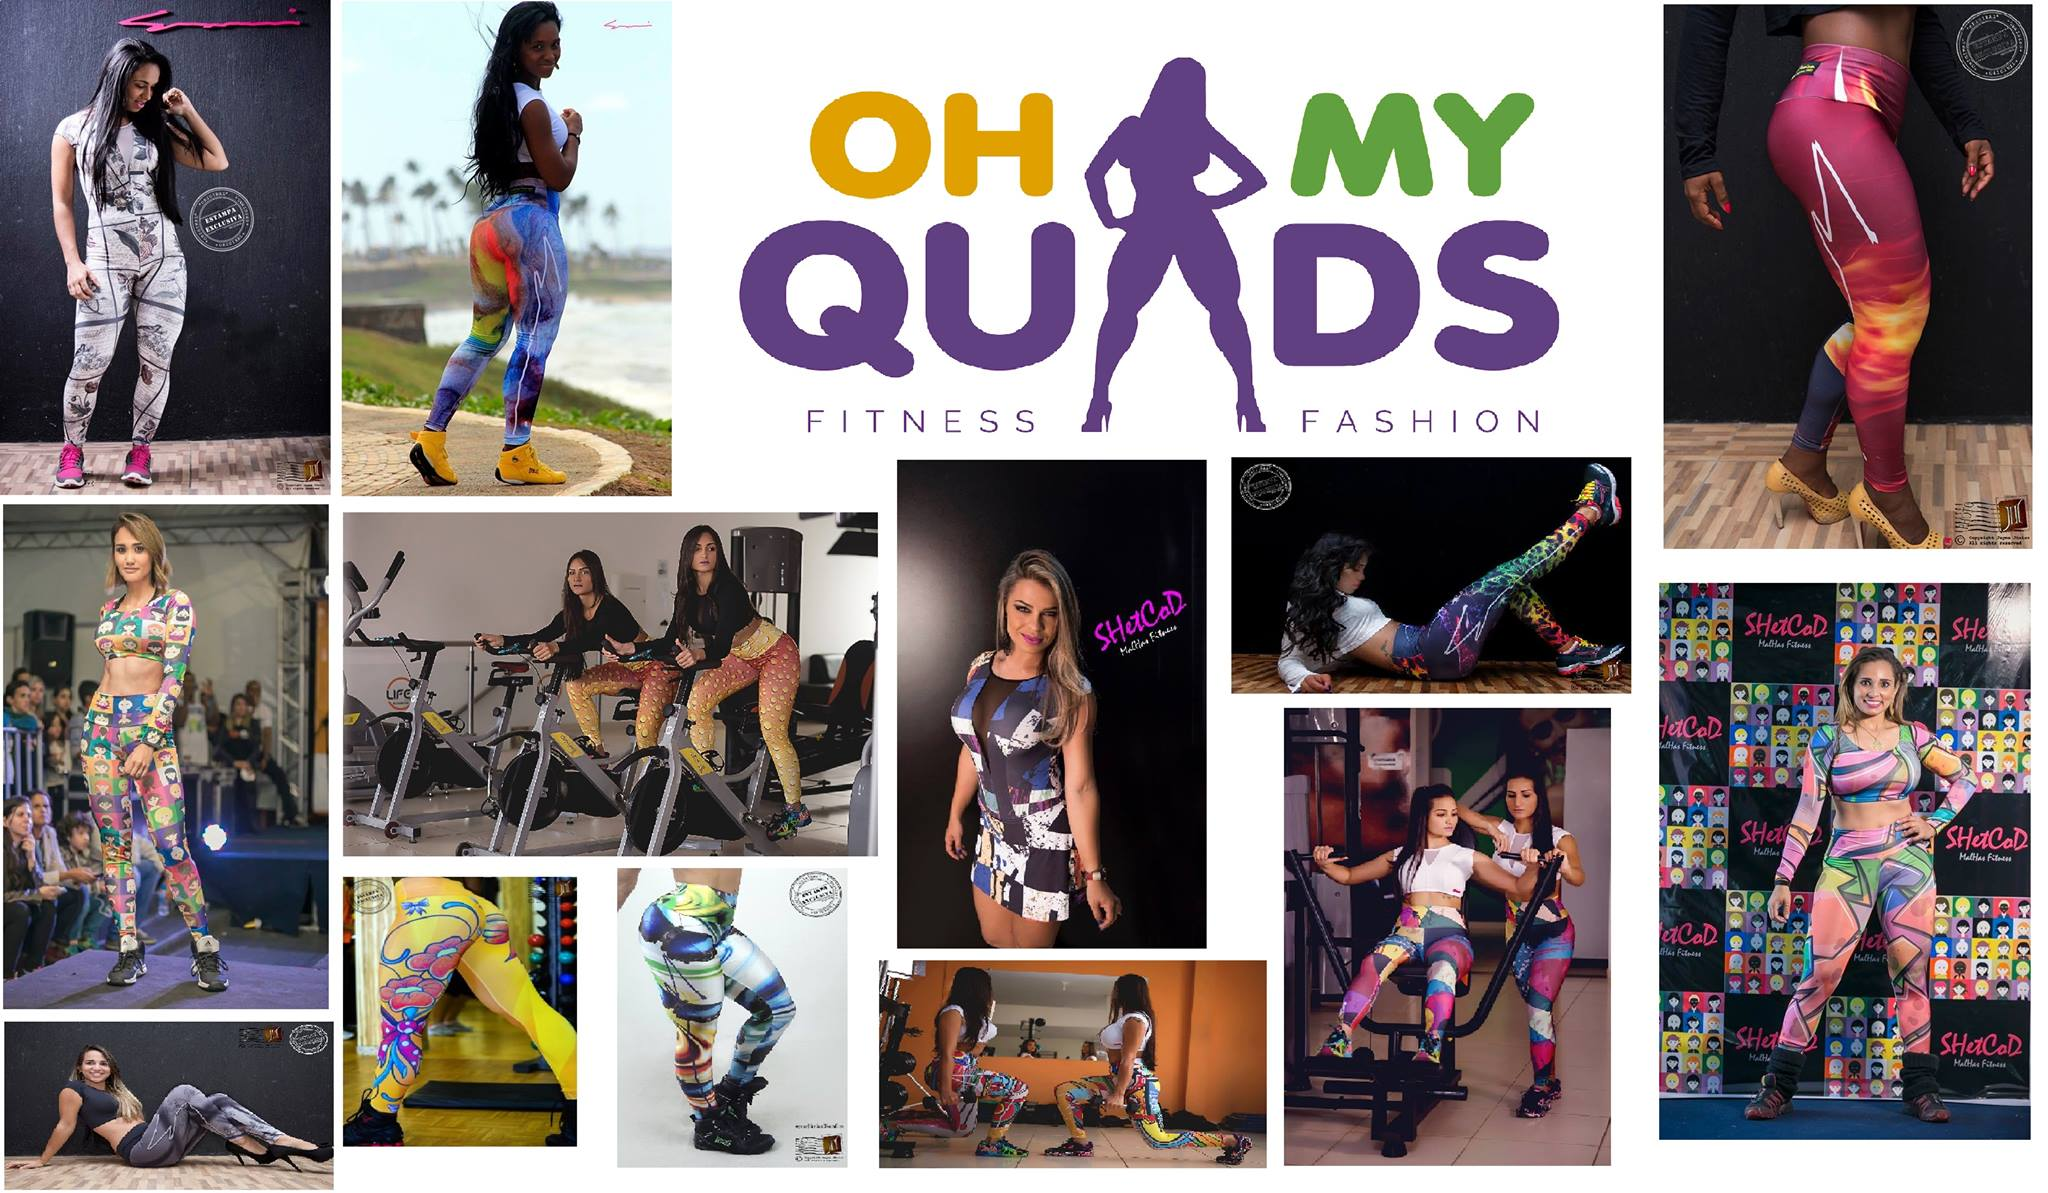 OhMyQuads - Fitness Fashion